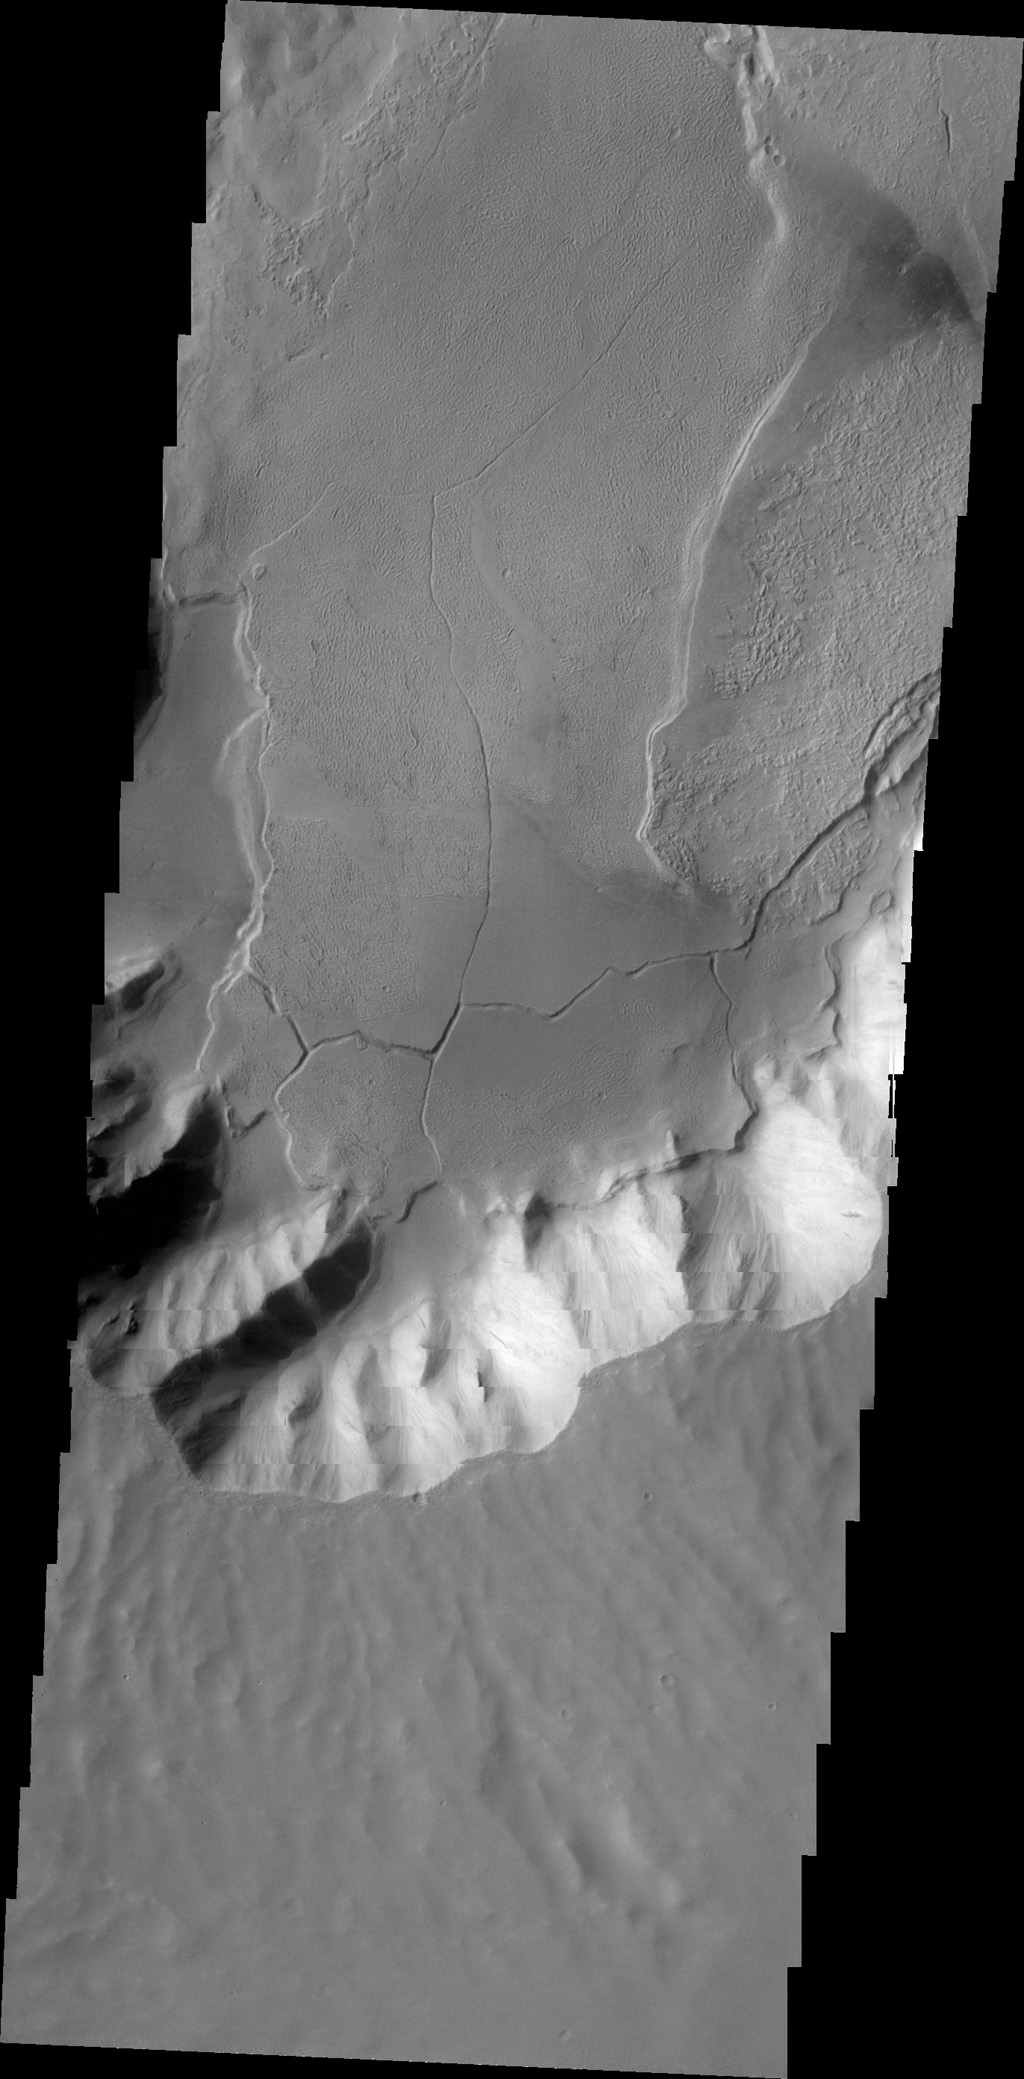 This image from NASA's 2001 Mars Odyssey spacecraft shows lava flows terminating at the foot of canyon walls in Echus Chasma. These lava flows are also fractured into large plates in this region.